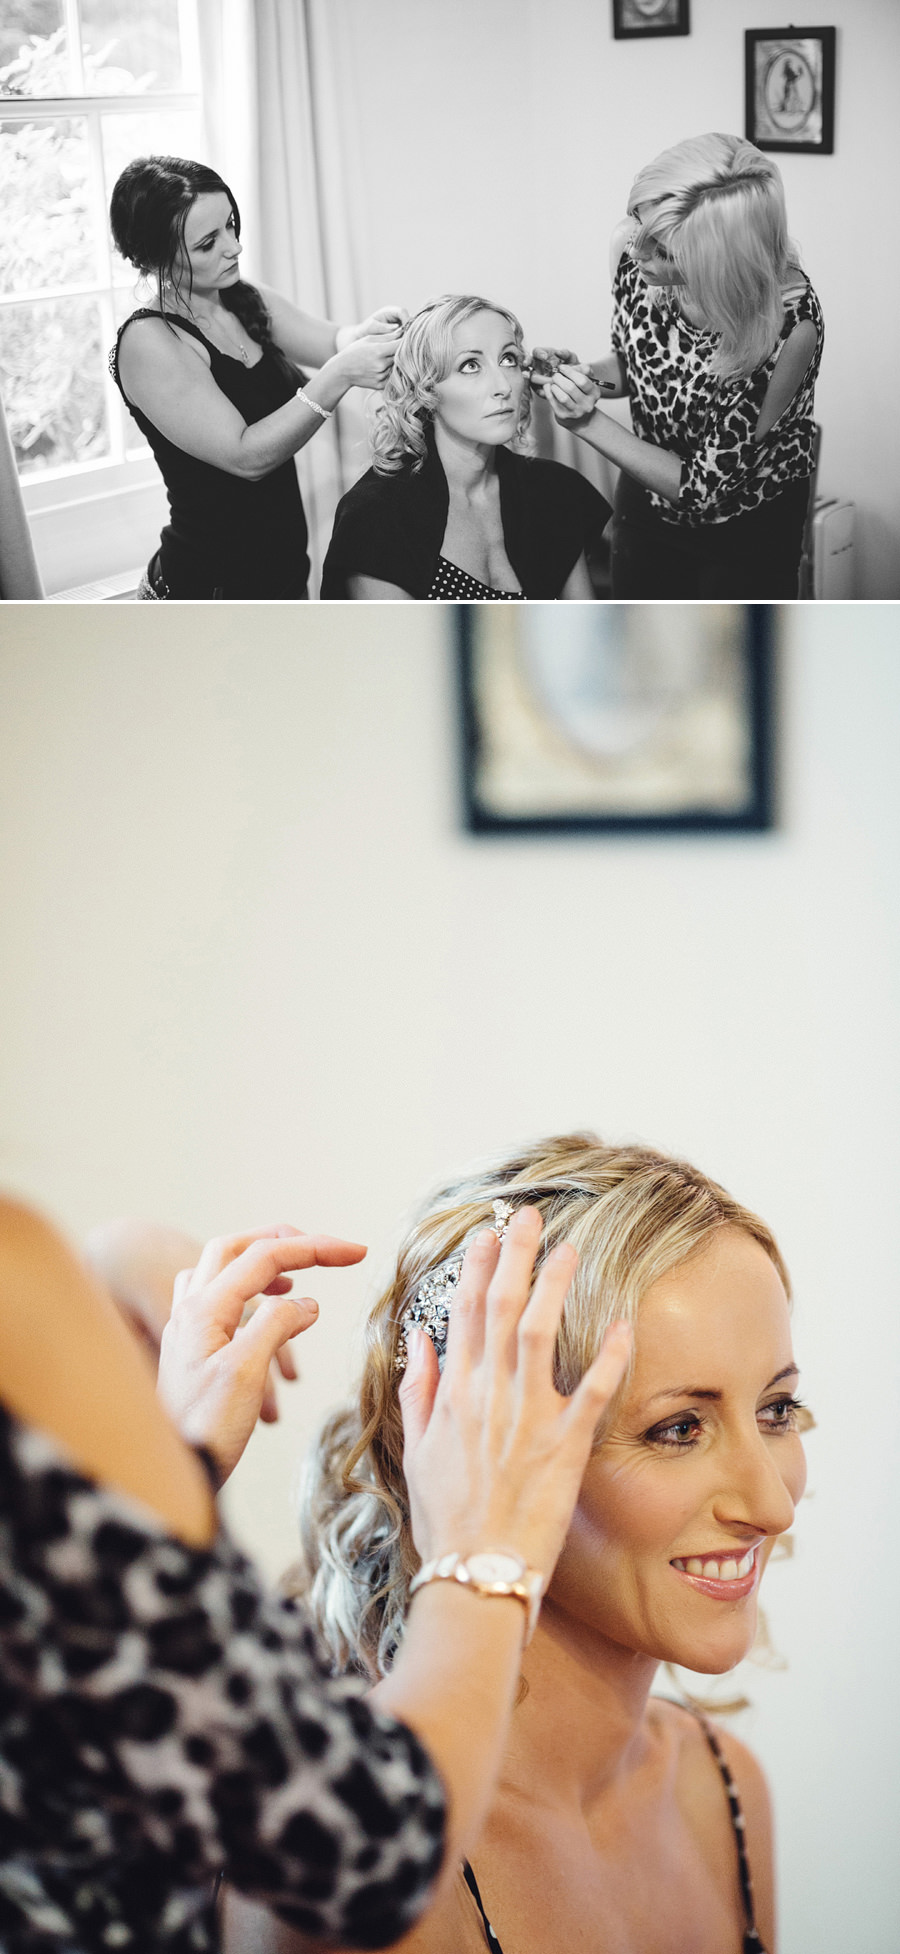 Timeless Wedding Photography: Getting ready